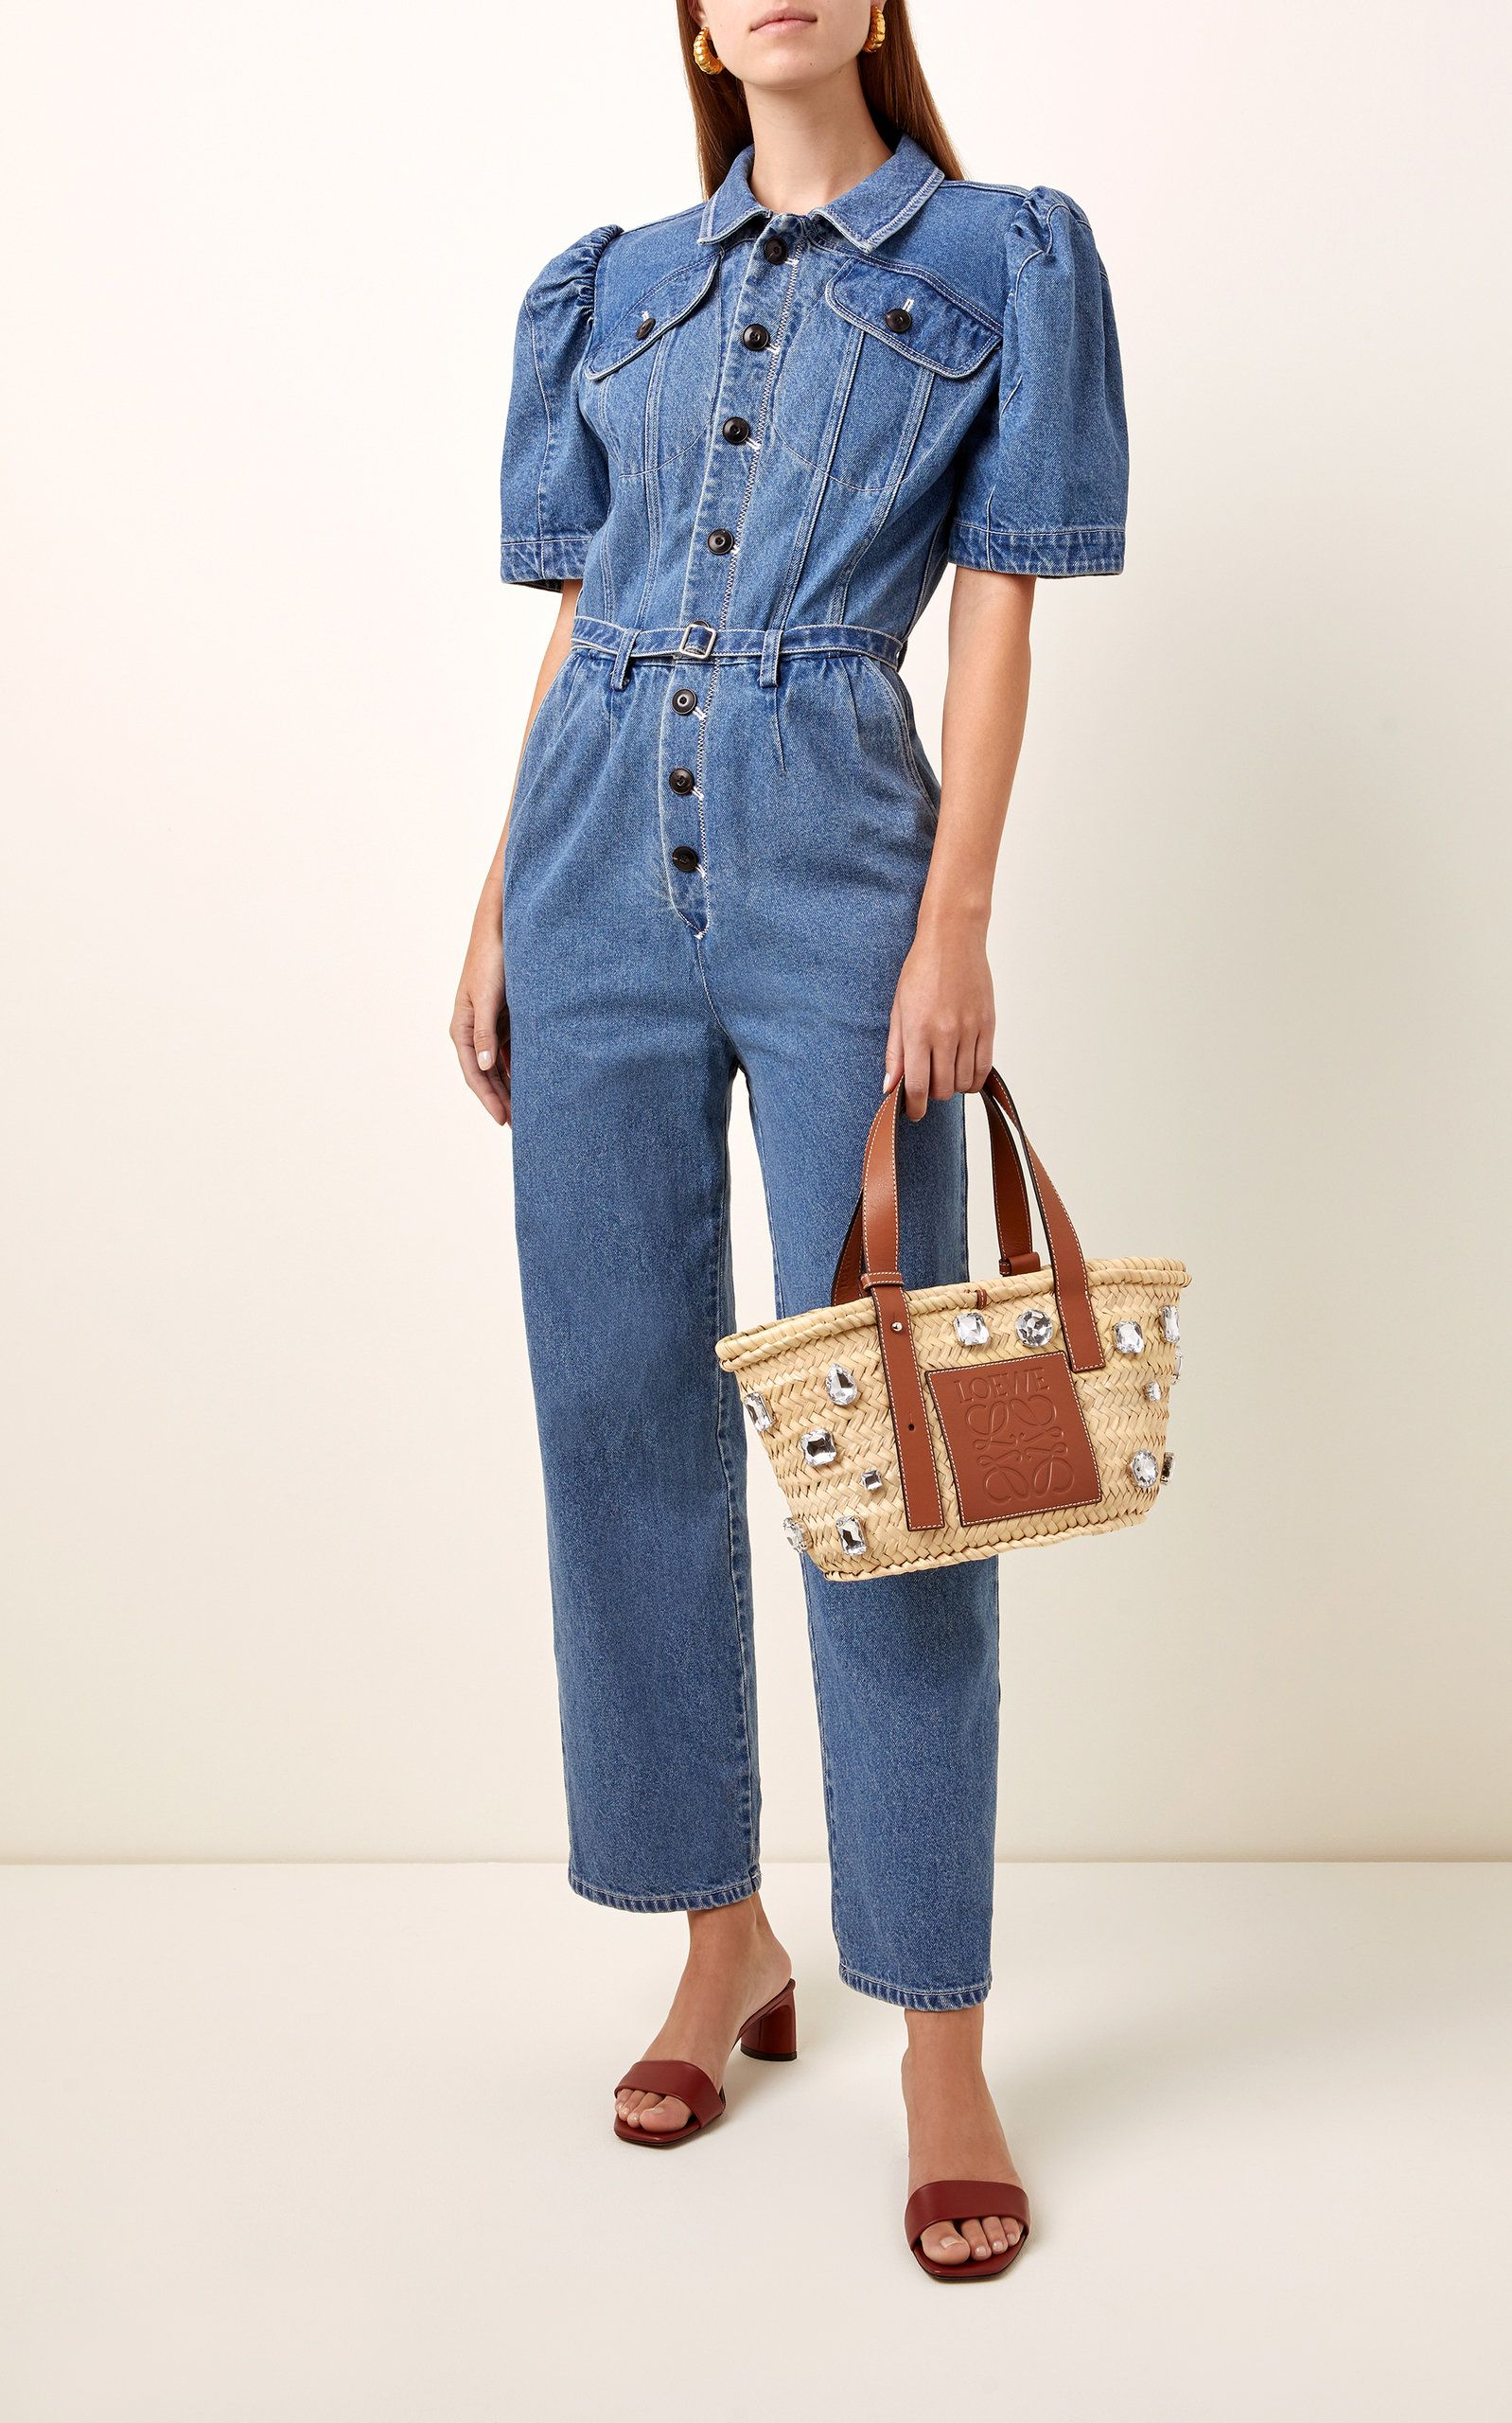 Sea's jumpsuit combines utilitarian elements with ultra-feminine details. It's cut from structured denim and has puffed sleeves and a straight-leg hem. The darted bodice defines your frame while the detachable belt allows you to cinch the waist.